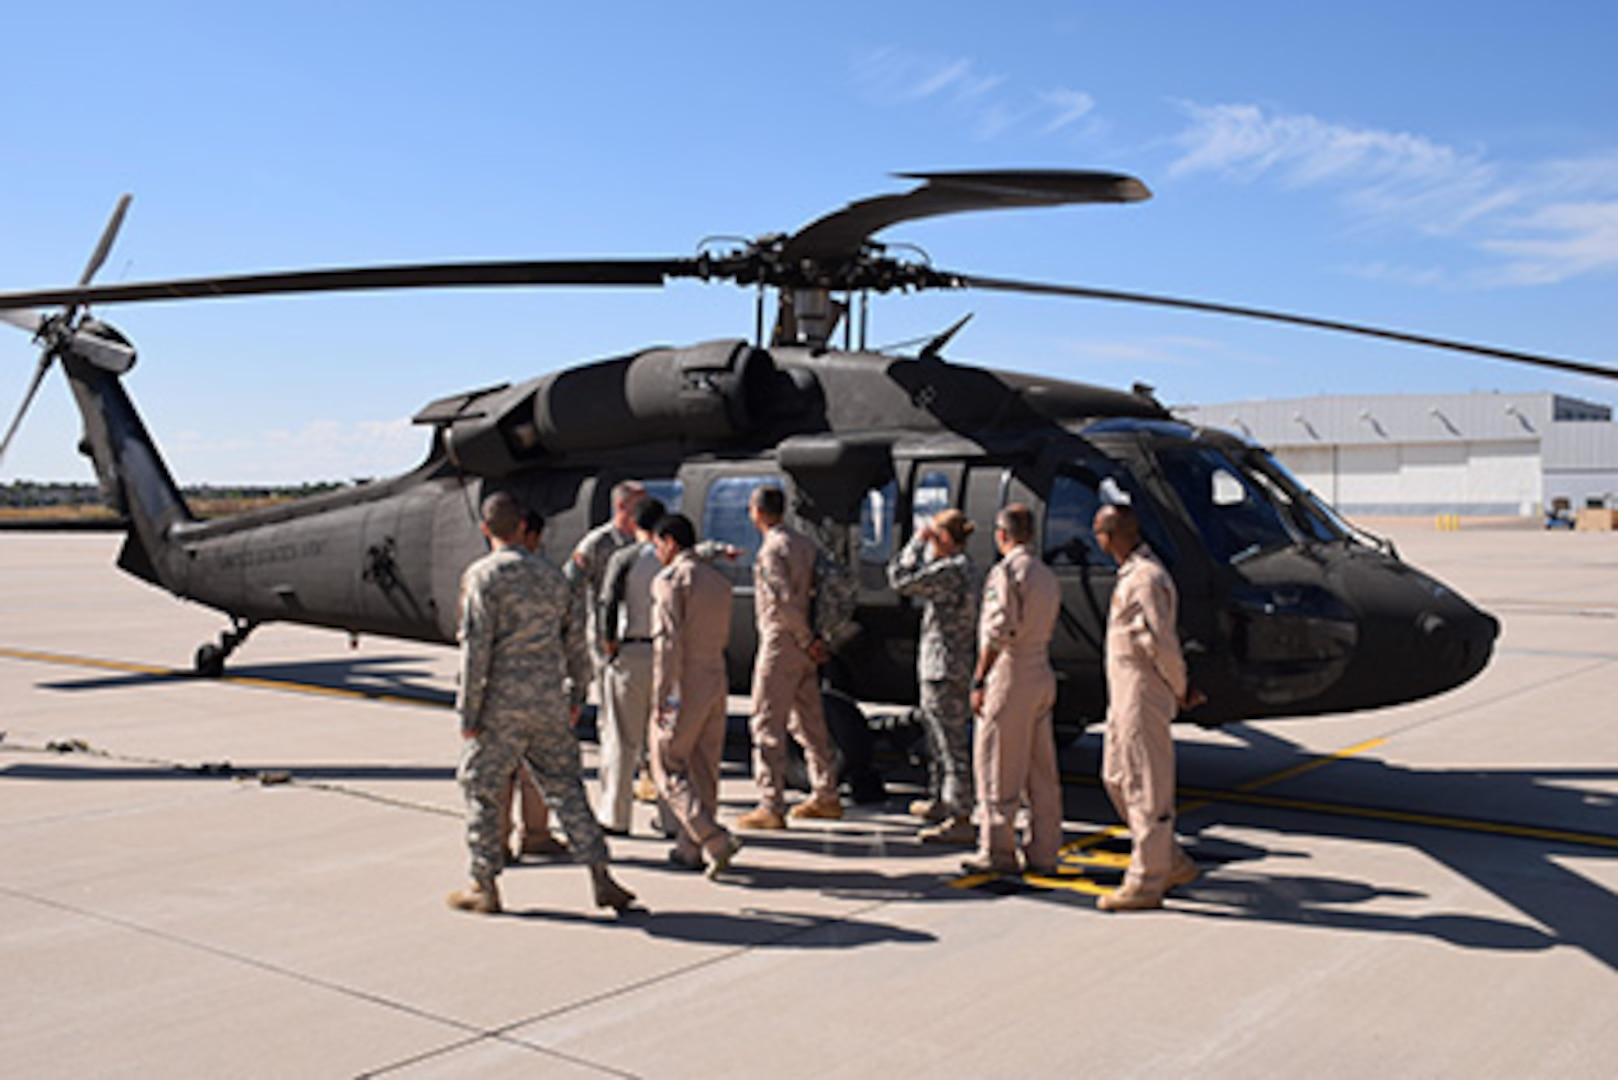 Colorado Army National Guardsmen and Jordan Armed Forces participate in a State Partnership Program exchange for rotary wing pilots at Buckley Air Force Base, Aurora, Colorado, Sept. 8, 2015. (U.S. Army National Guard photo by Staff Sgt. Joseph K. VonNida/RELEASED)